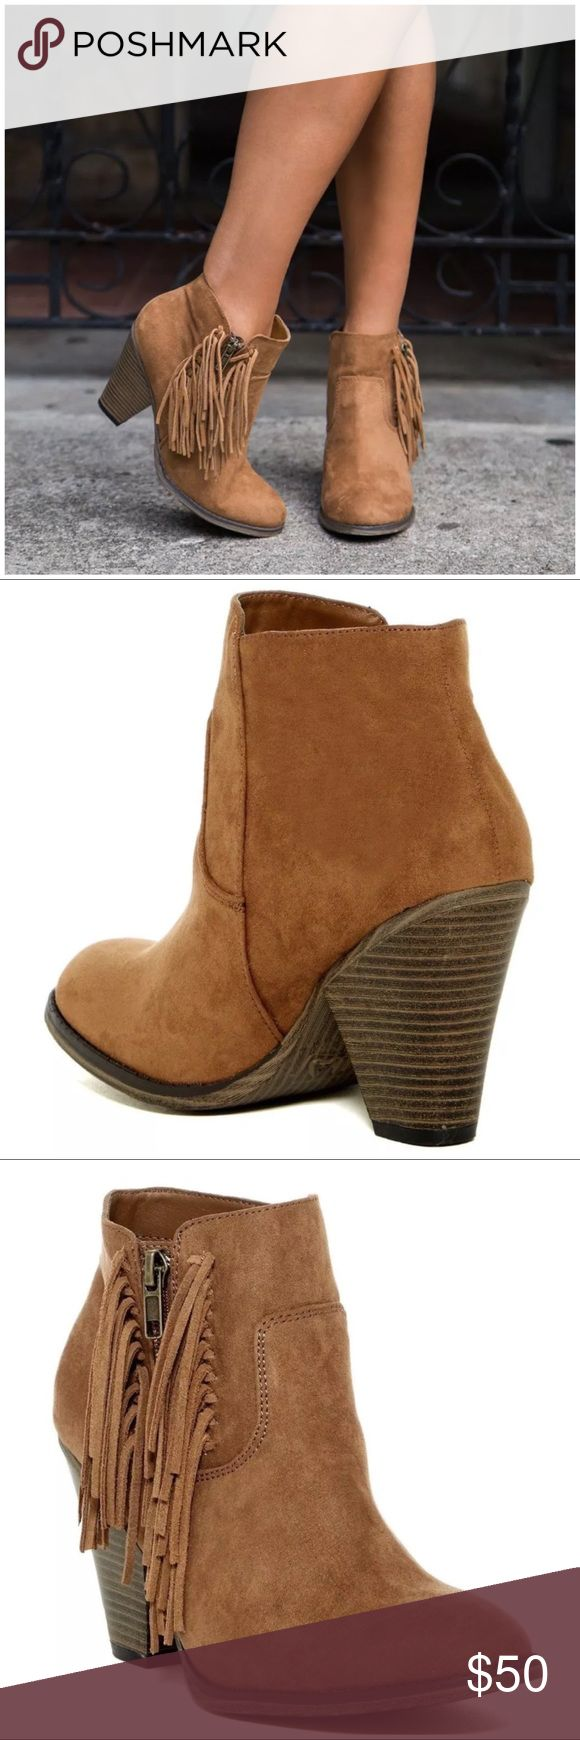 "Tan Suede Fringe Stacked Chunky Heel Bootie Western-inspired side fringe detail completes a soft textured bootie lifted on a wooden heel.  Sizing: True to size. Standard width   - Round toe - Vegan suede with genuine suede fringe detail - Side zip closure - Stacked print chunky heel - Approx. 3.5"" shaft height, 9"" opening circumference - Approx. 3.5"" heel - Imported Shoes Ankle Boots & Booties"